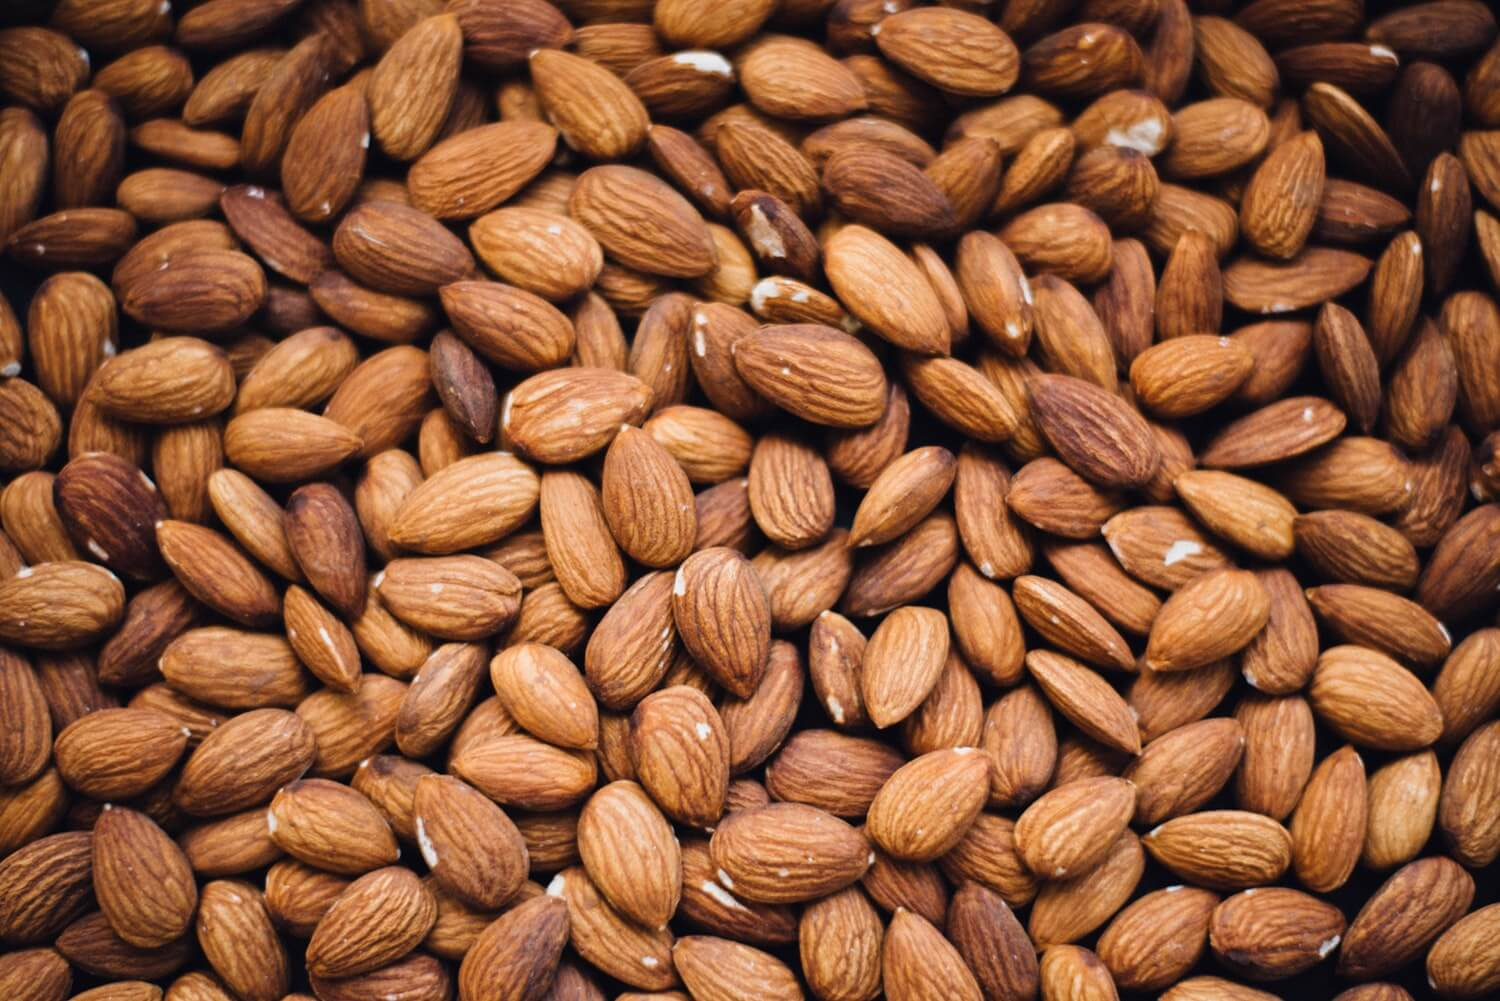 Almonds: a healthy nurse snack!